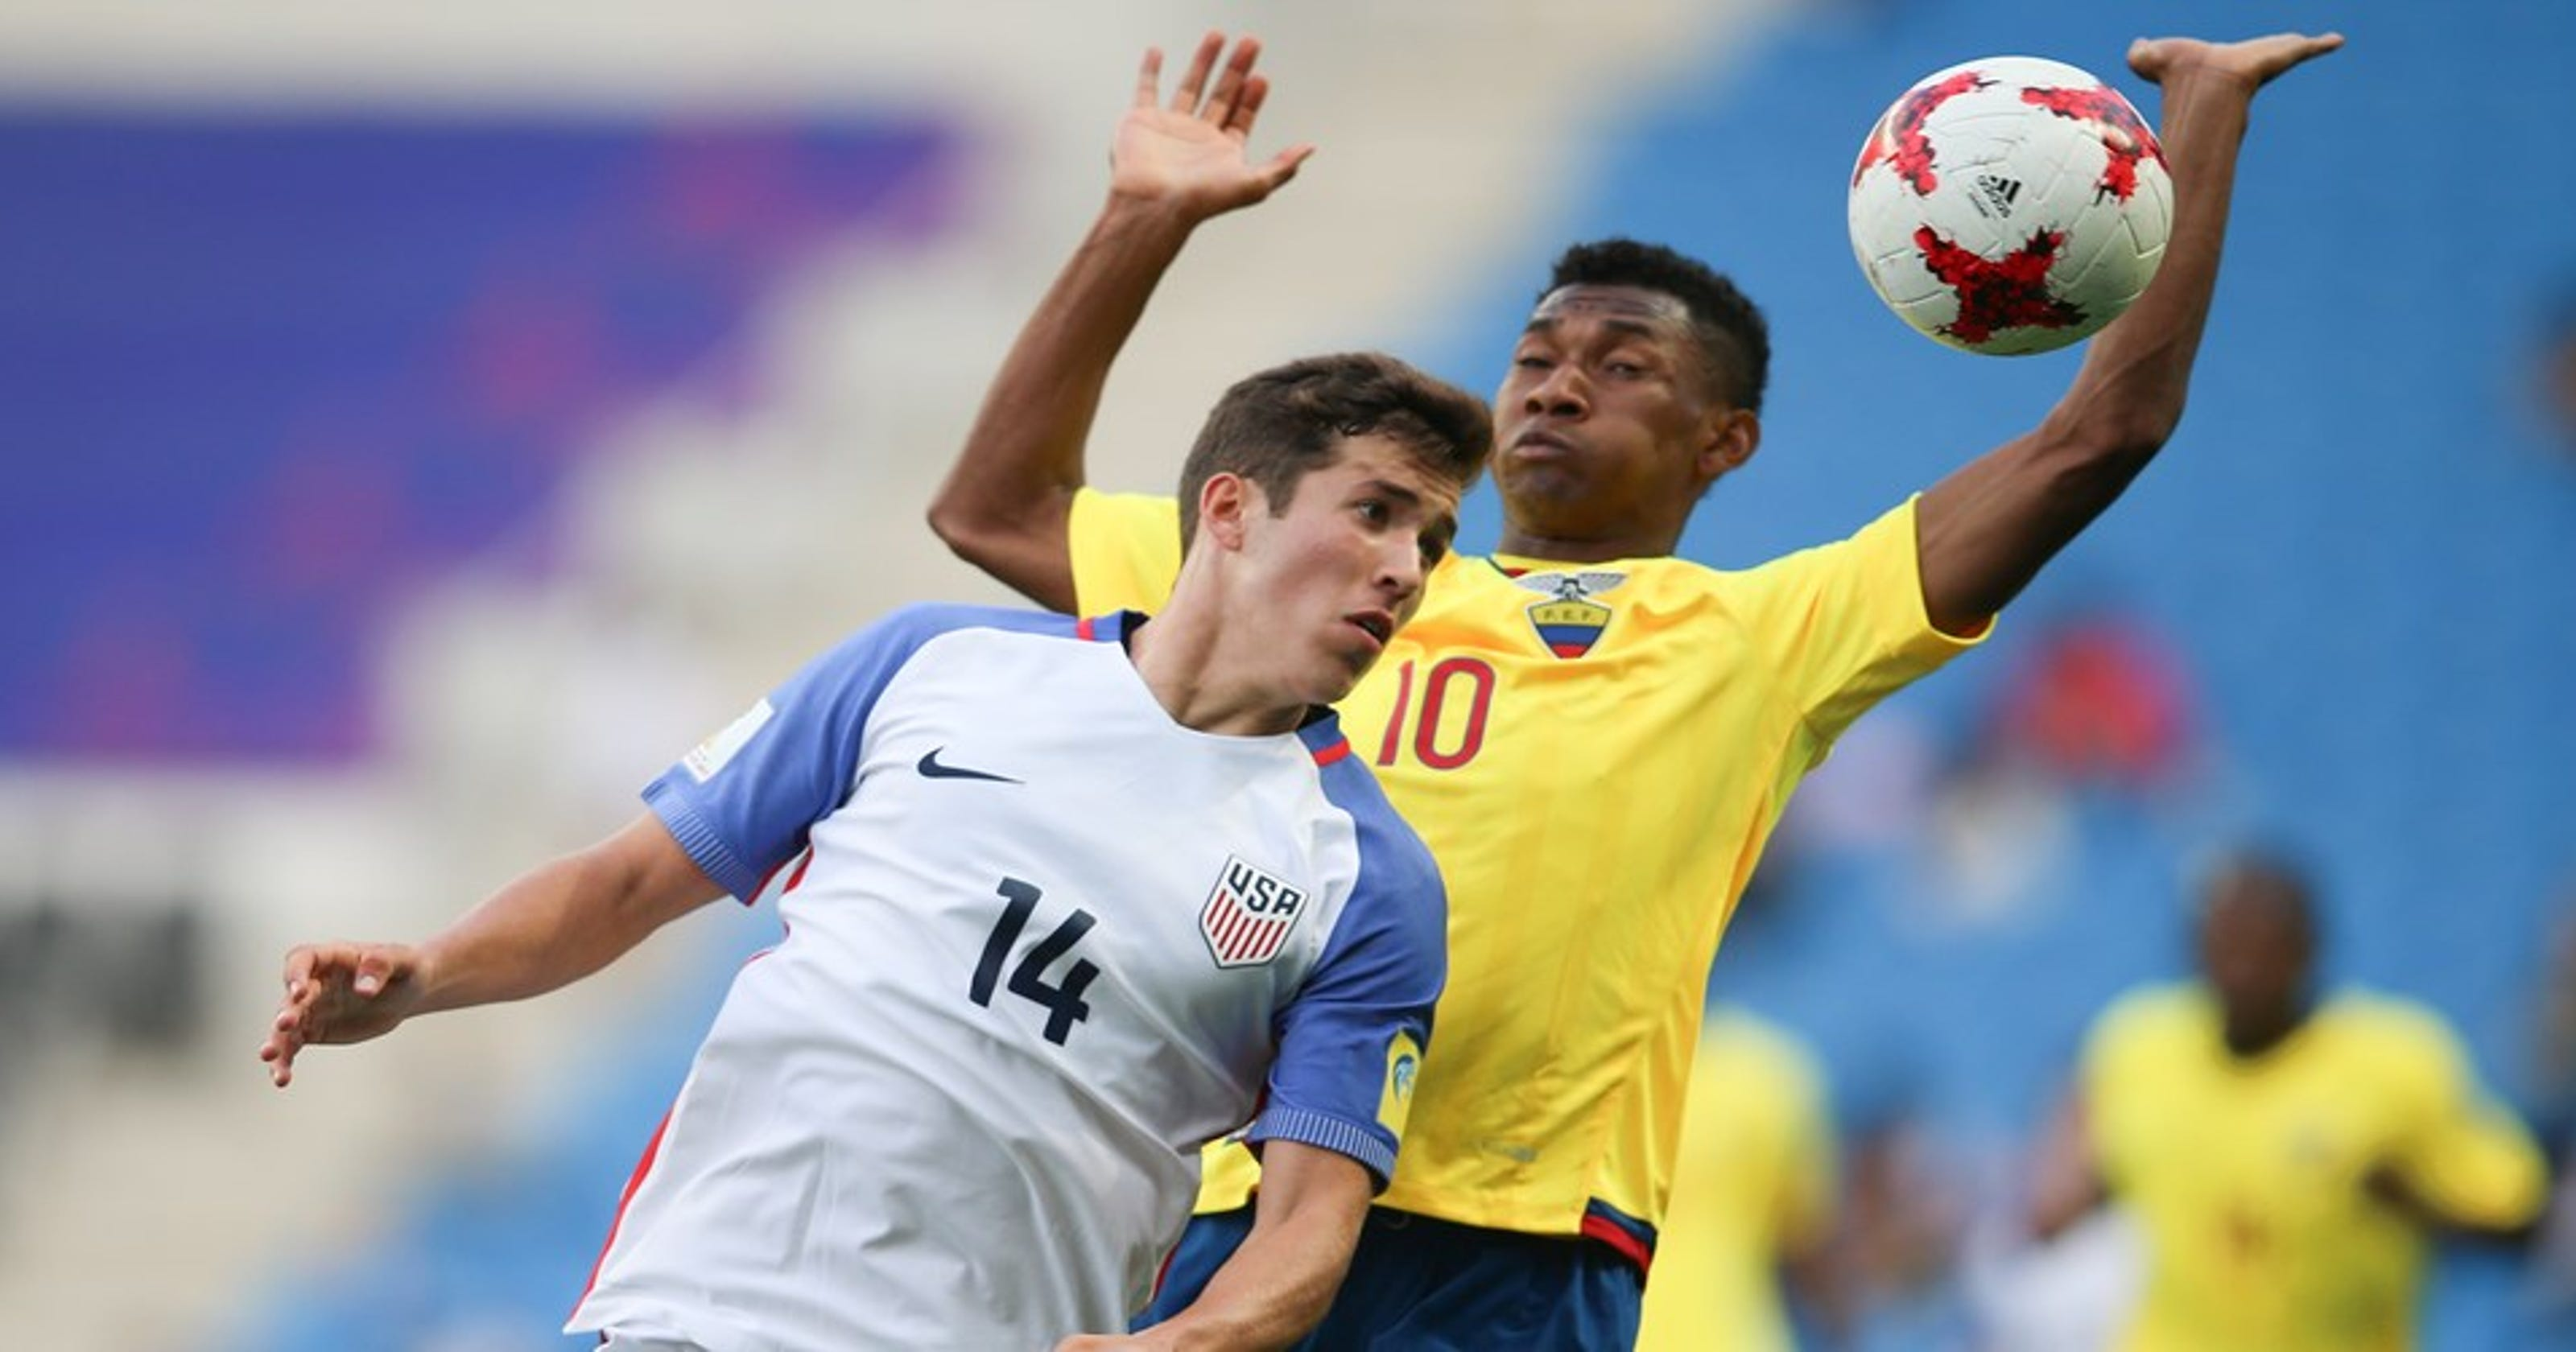 d7a8fd560a6 Las Cruces born soccer player riding high after U-20 World Cup experience